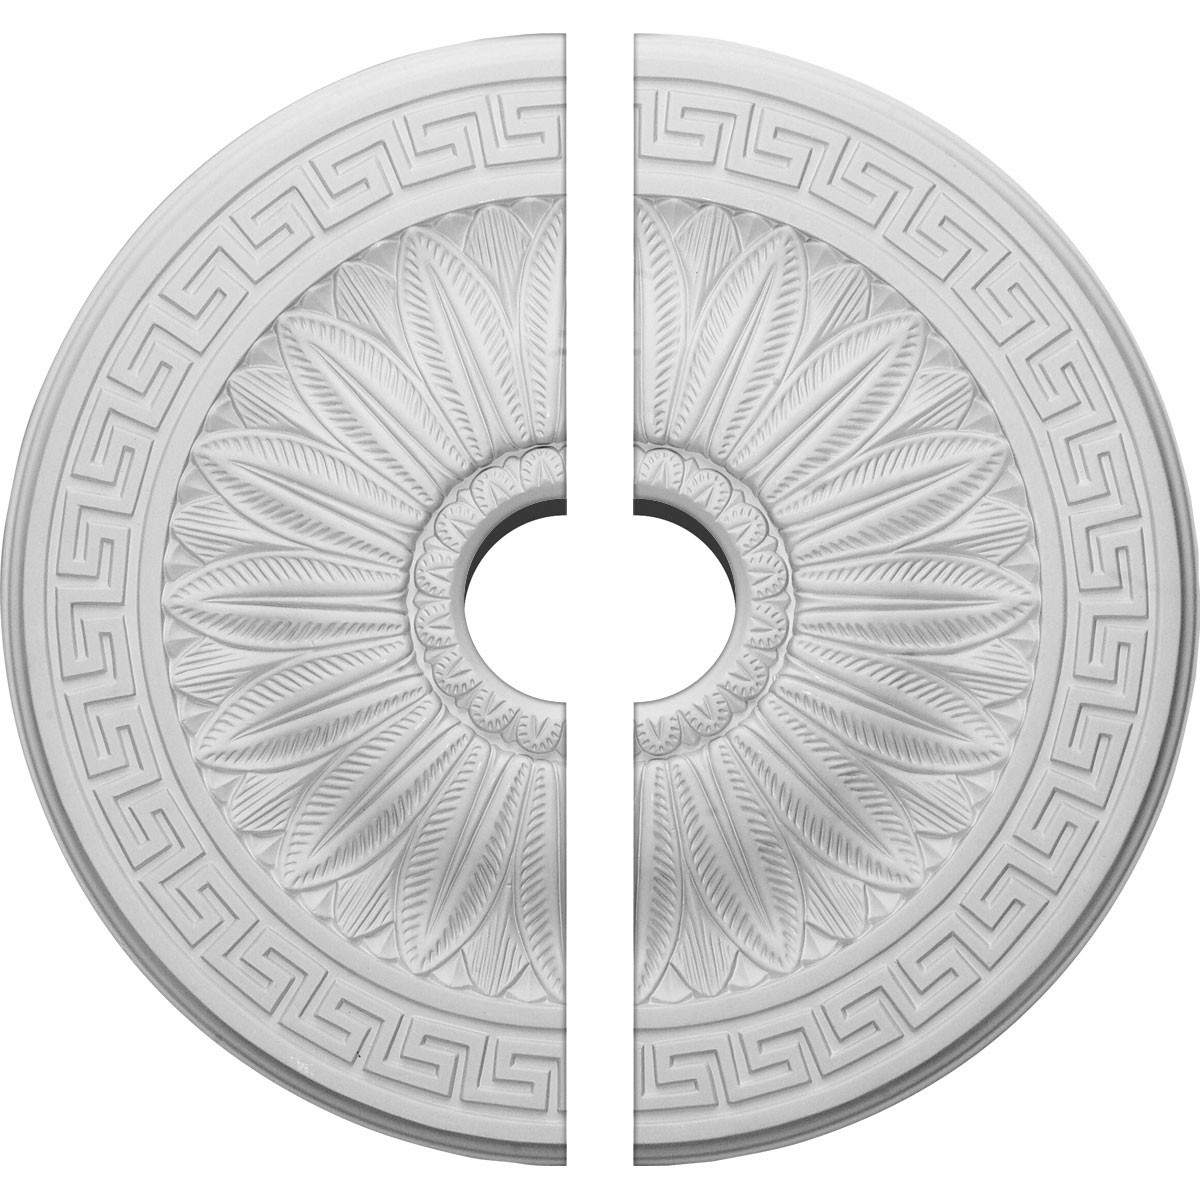 "EM-CM20HA2-03500 - 20""OD x 3 1/2""ID x 1 3/8""P Randee Ceiling Medallion, Two Piece (Fits Canopies up to 3 7/8"")"